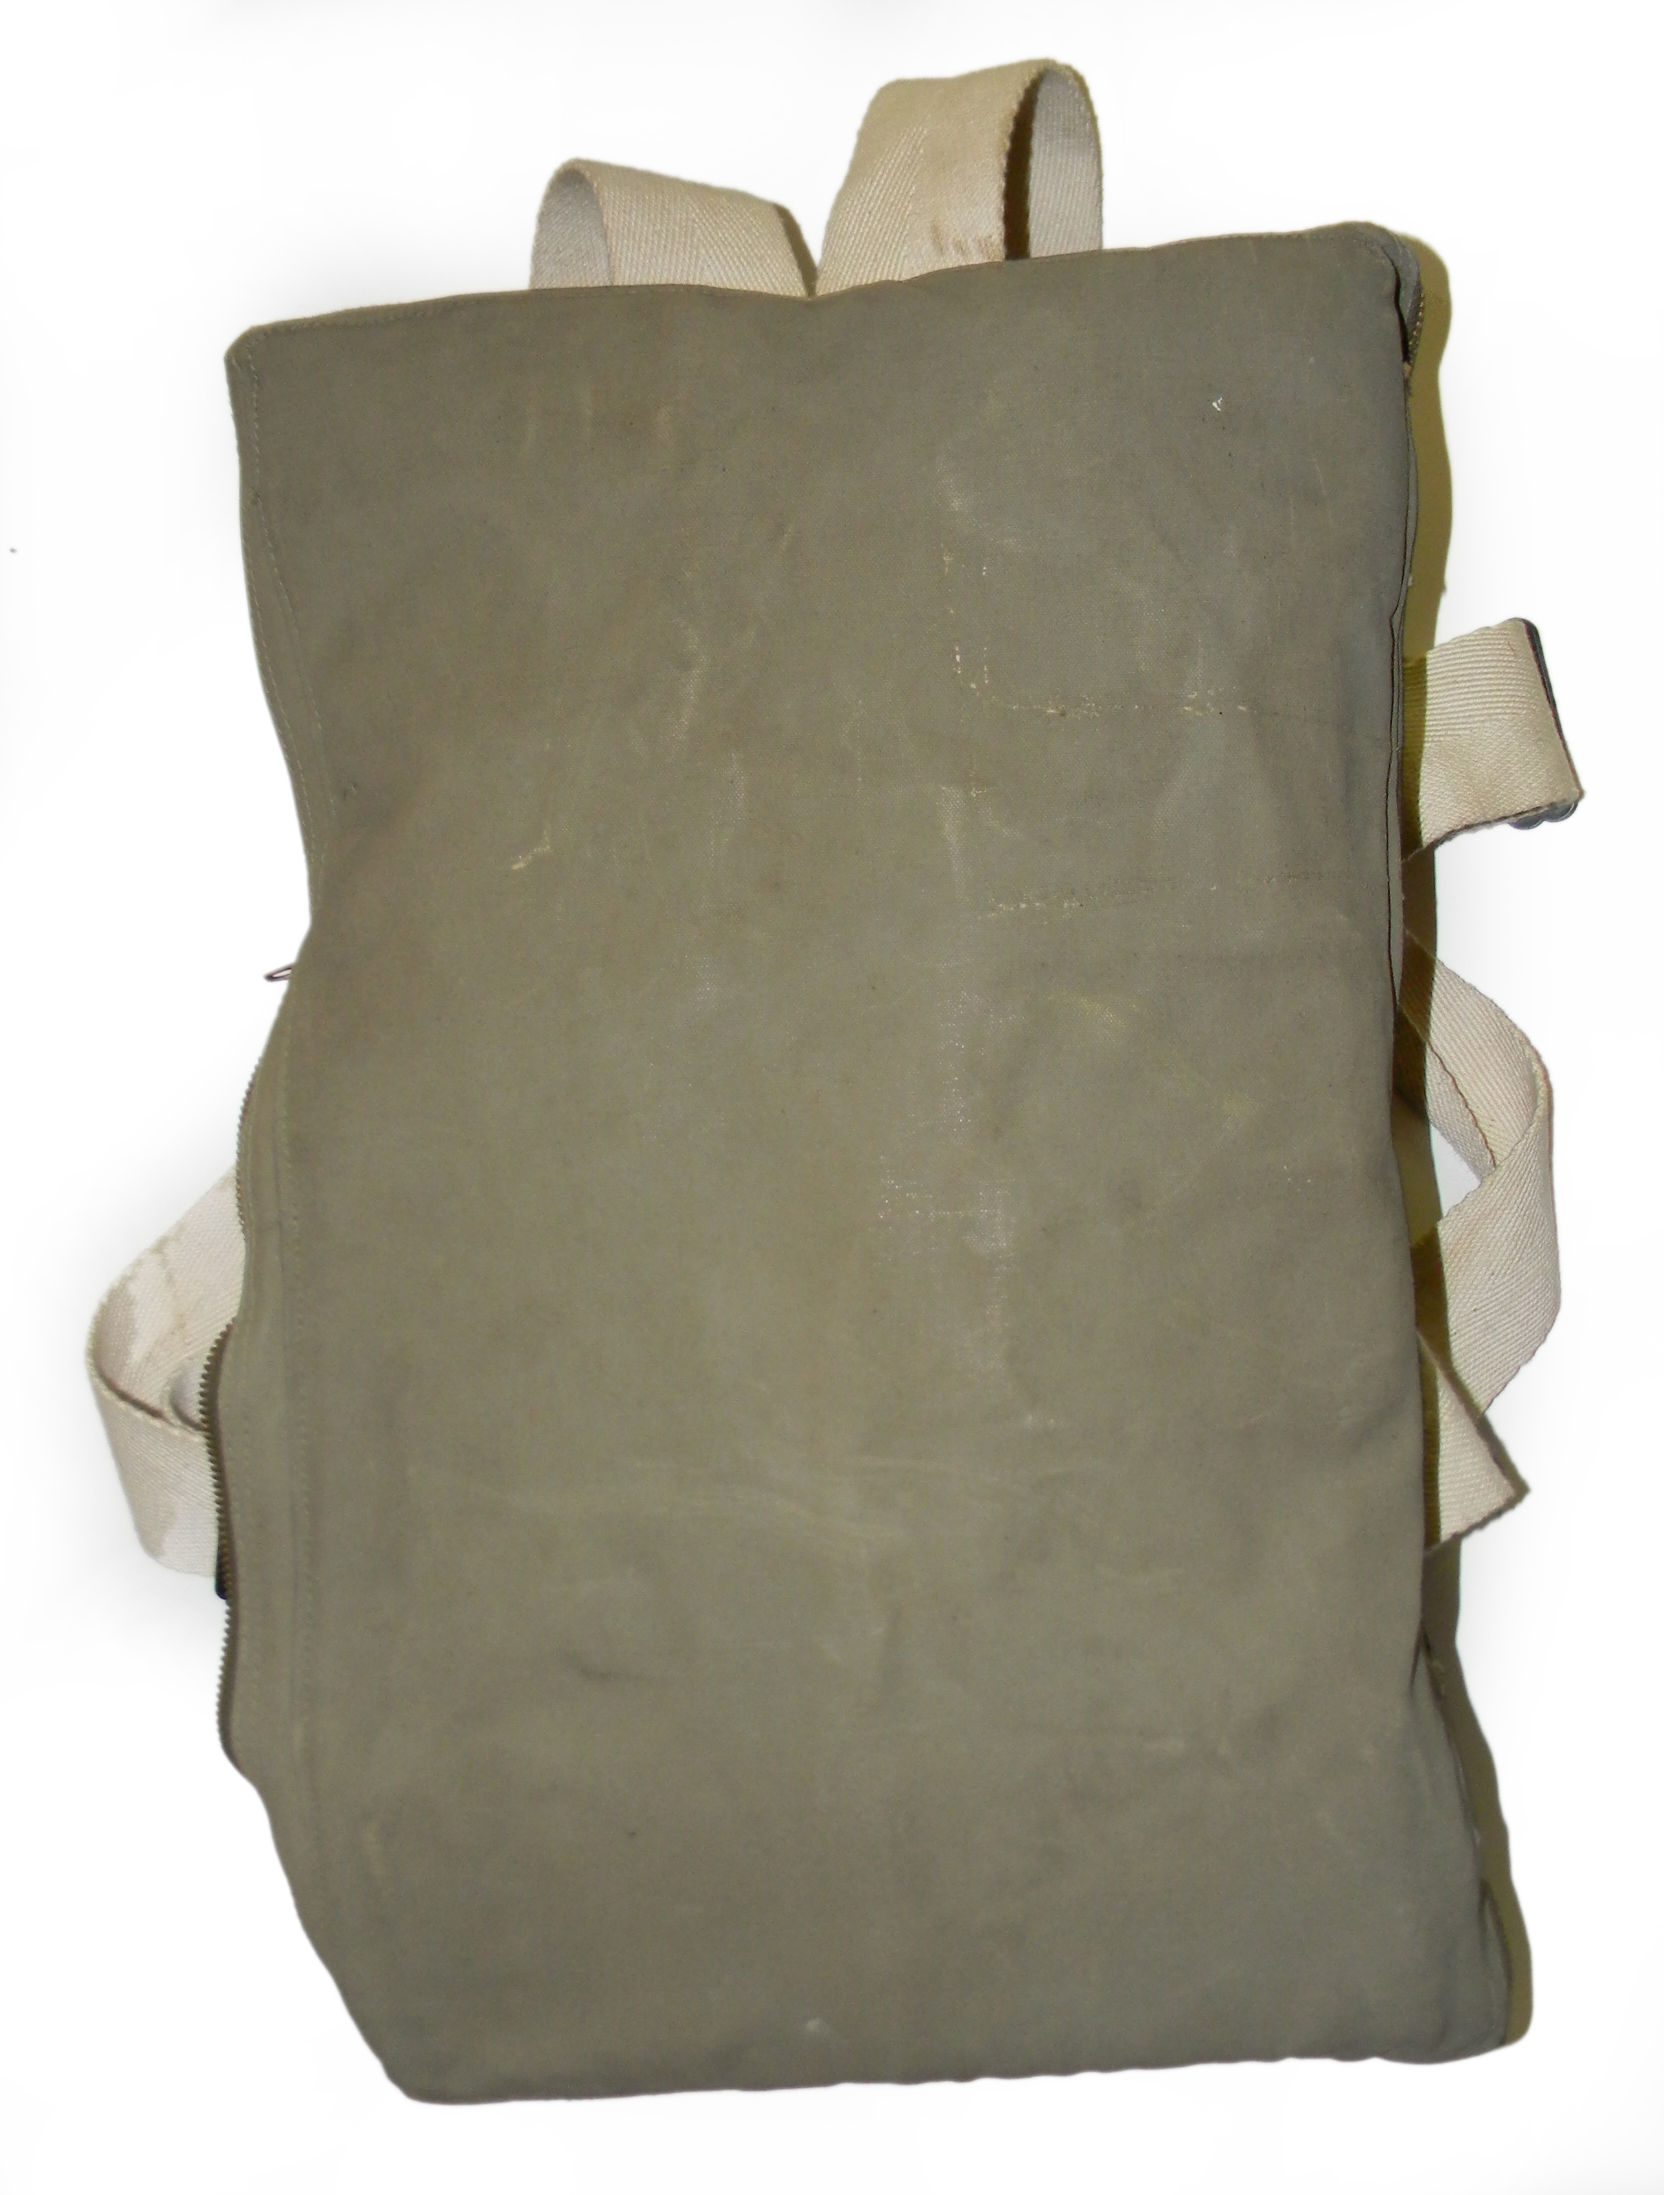 USN M-592 Back Pad Kit Type II